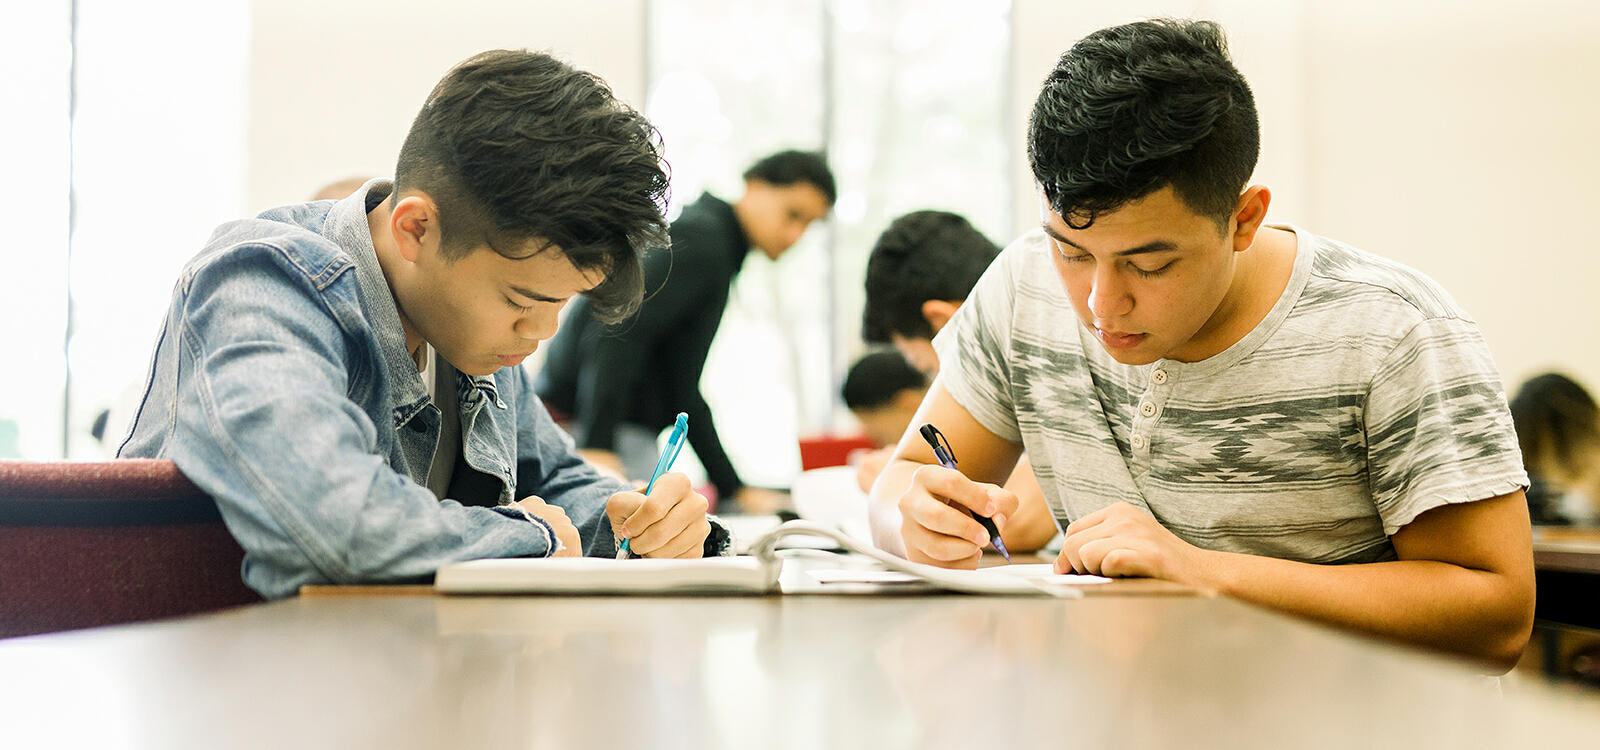 Two male students sit at a rectangle table taking notes from the same textbook